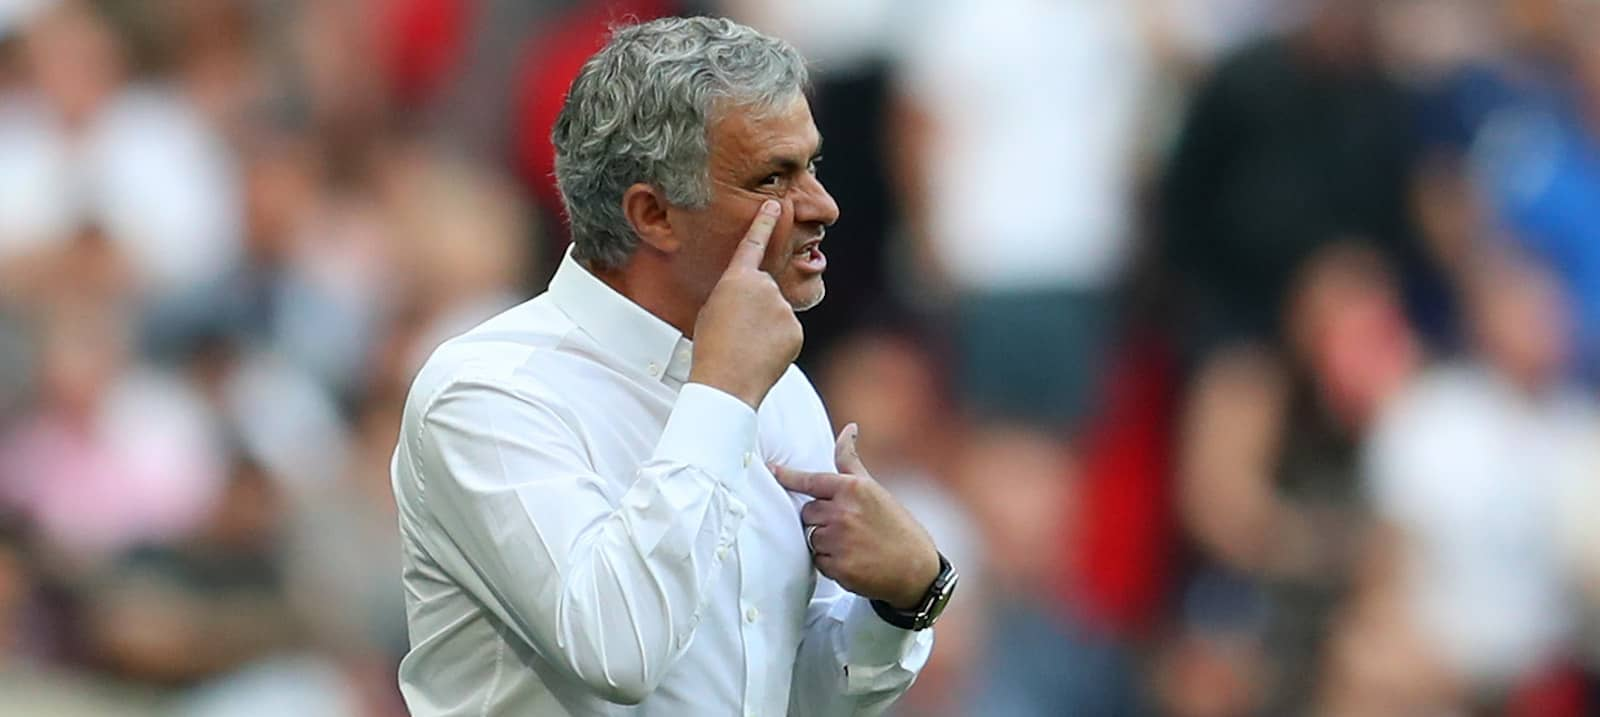 Jamie Carragher: Jose Mourinho will not be Manchester United manager this time next year